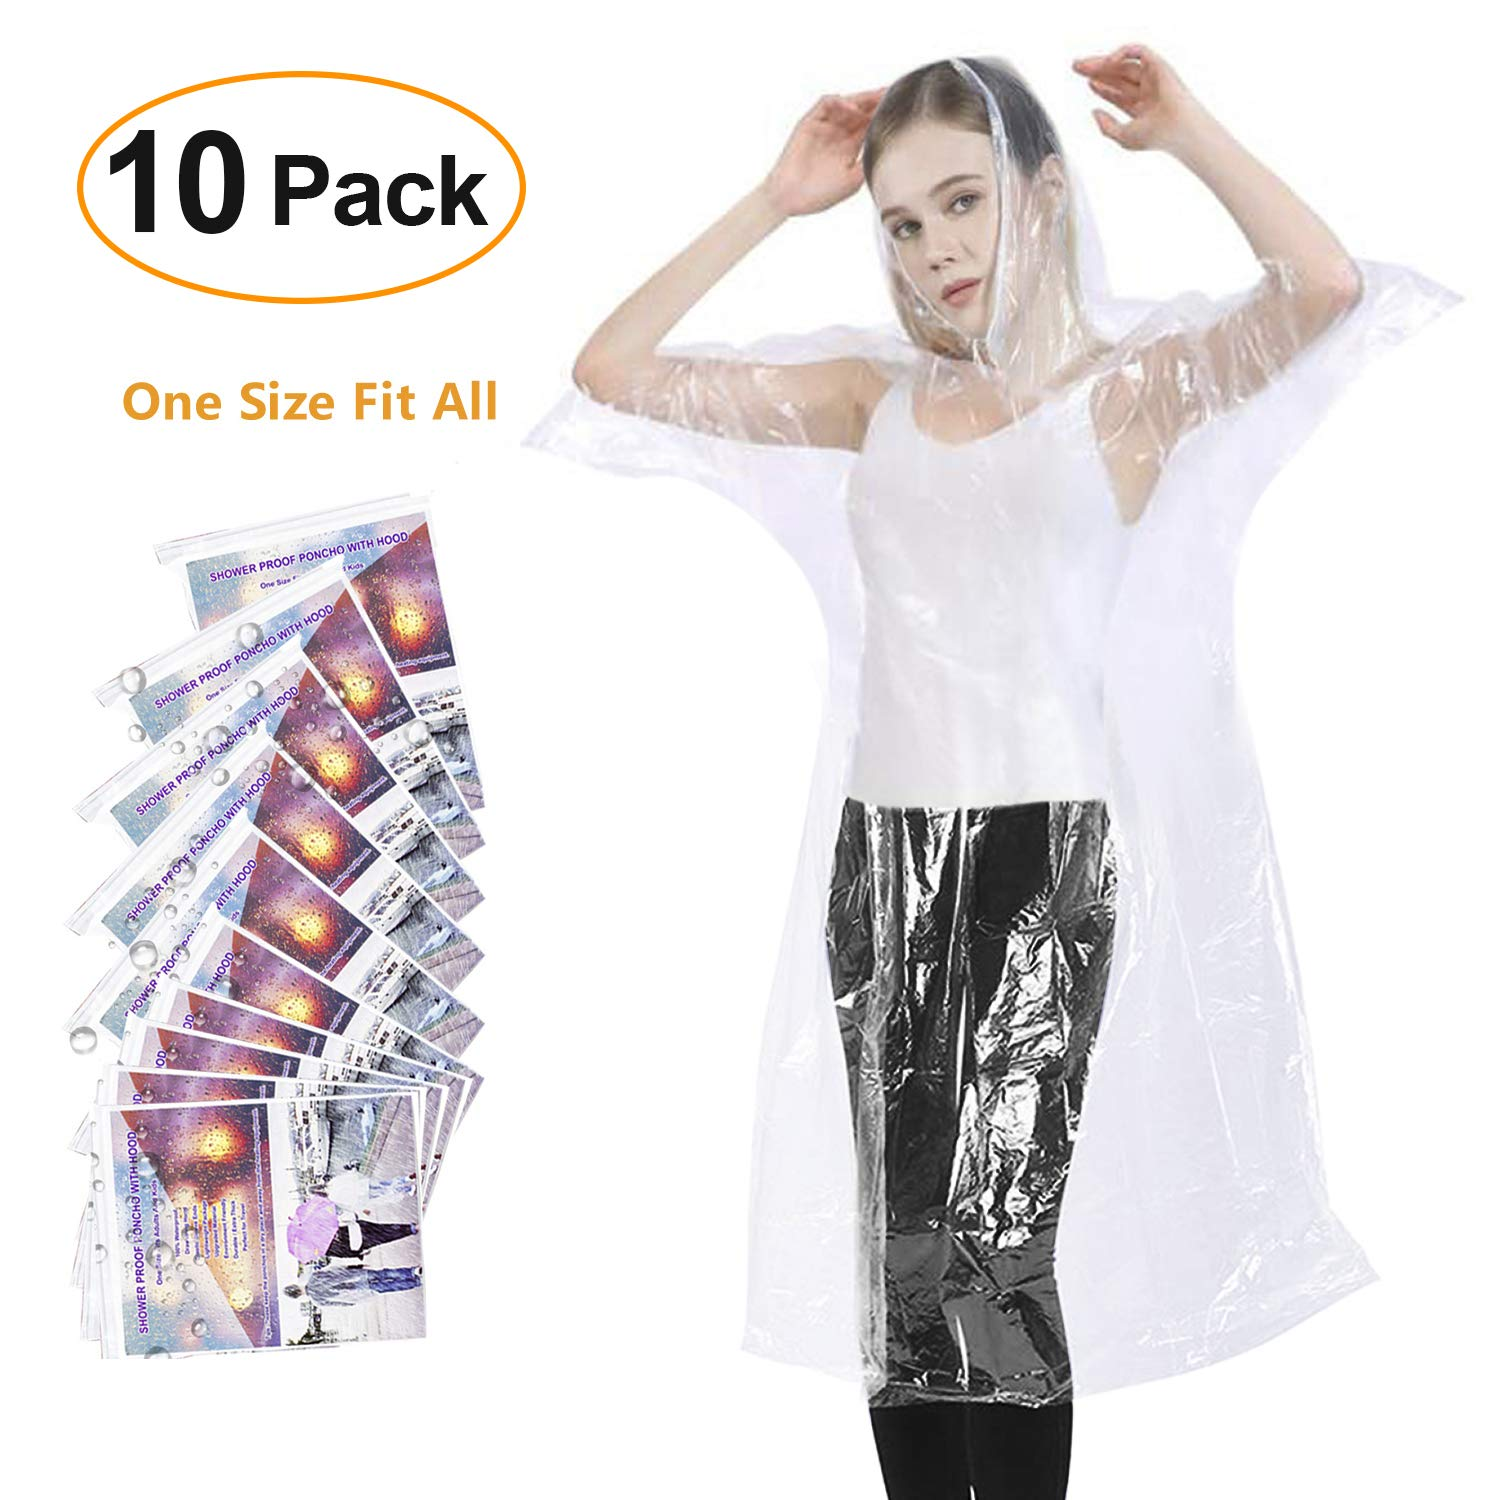 Rain Ponchos for Adults Disposable - Waterproof Lightweight (10 Pack) Rain Ponchos with Drawstring Hood 50% Thicker Material Emergency Rain Poncho Clear Color by Maigoo